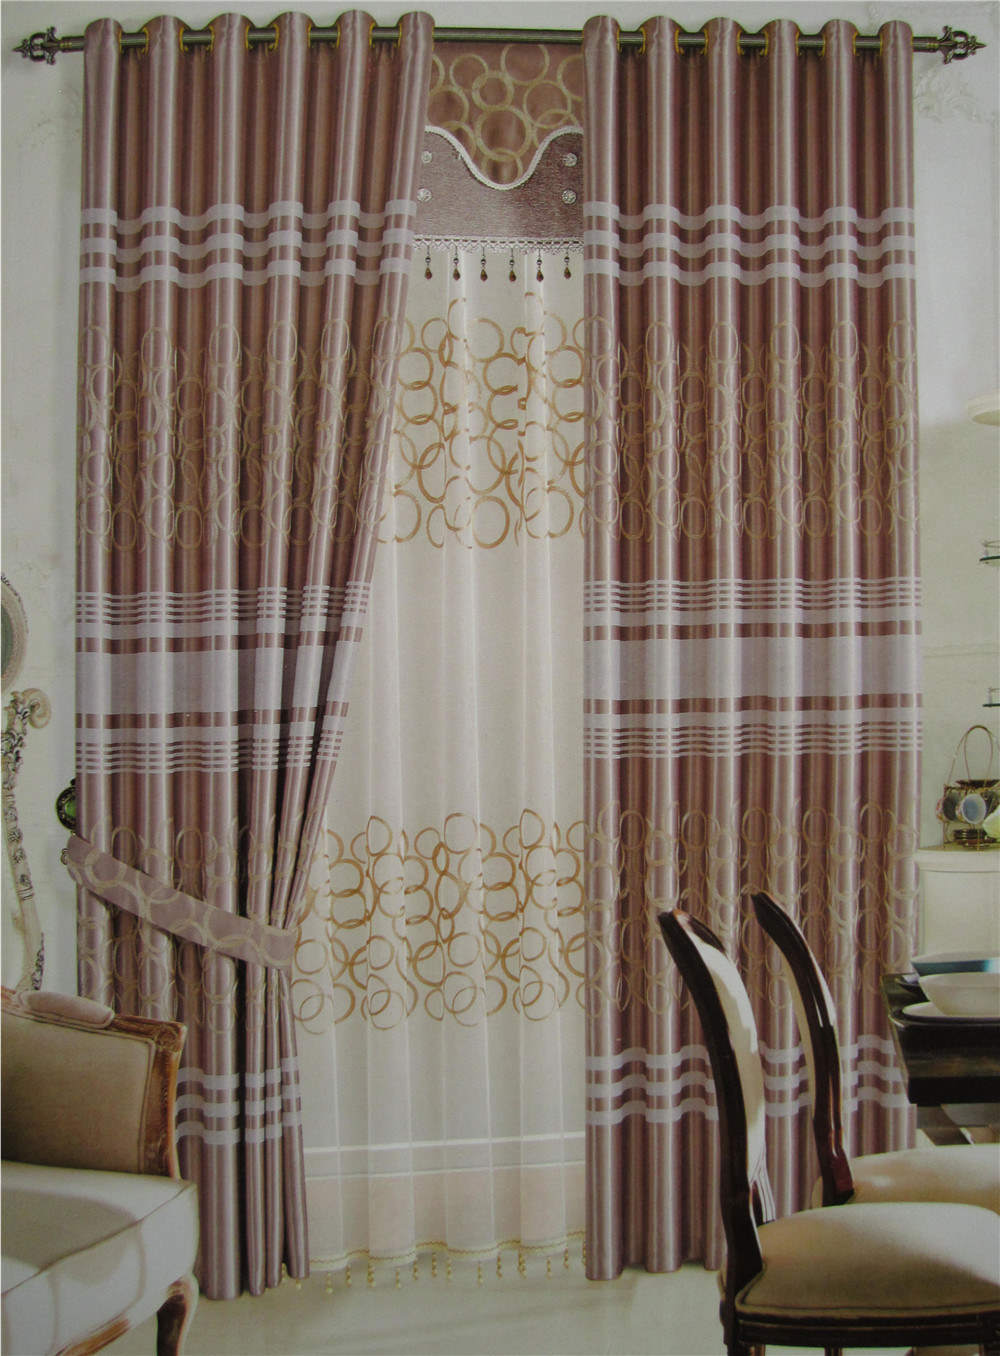 Living room curtains bedroom curtains l00913501 curtain for Living room curtains